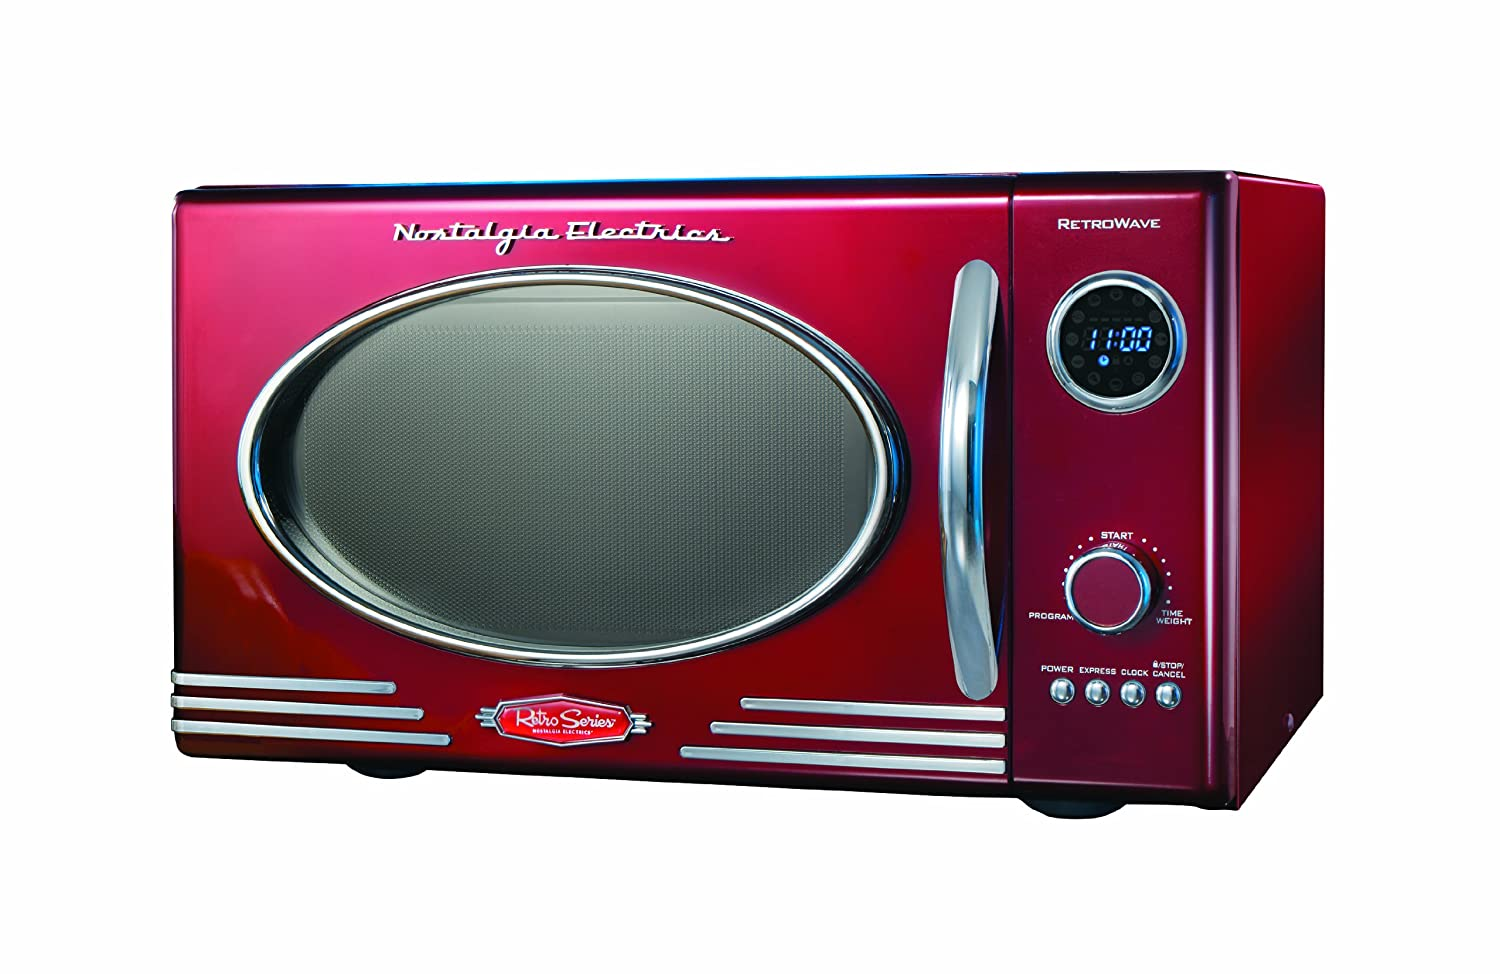 Retro Series Microwave Oven at Amazon.com